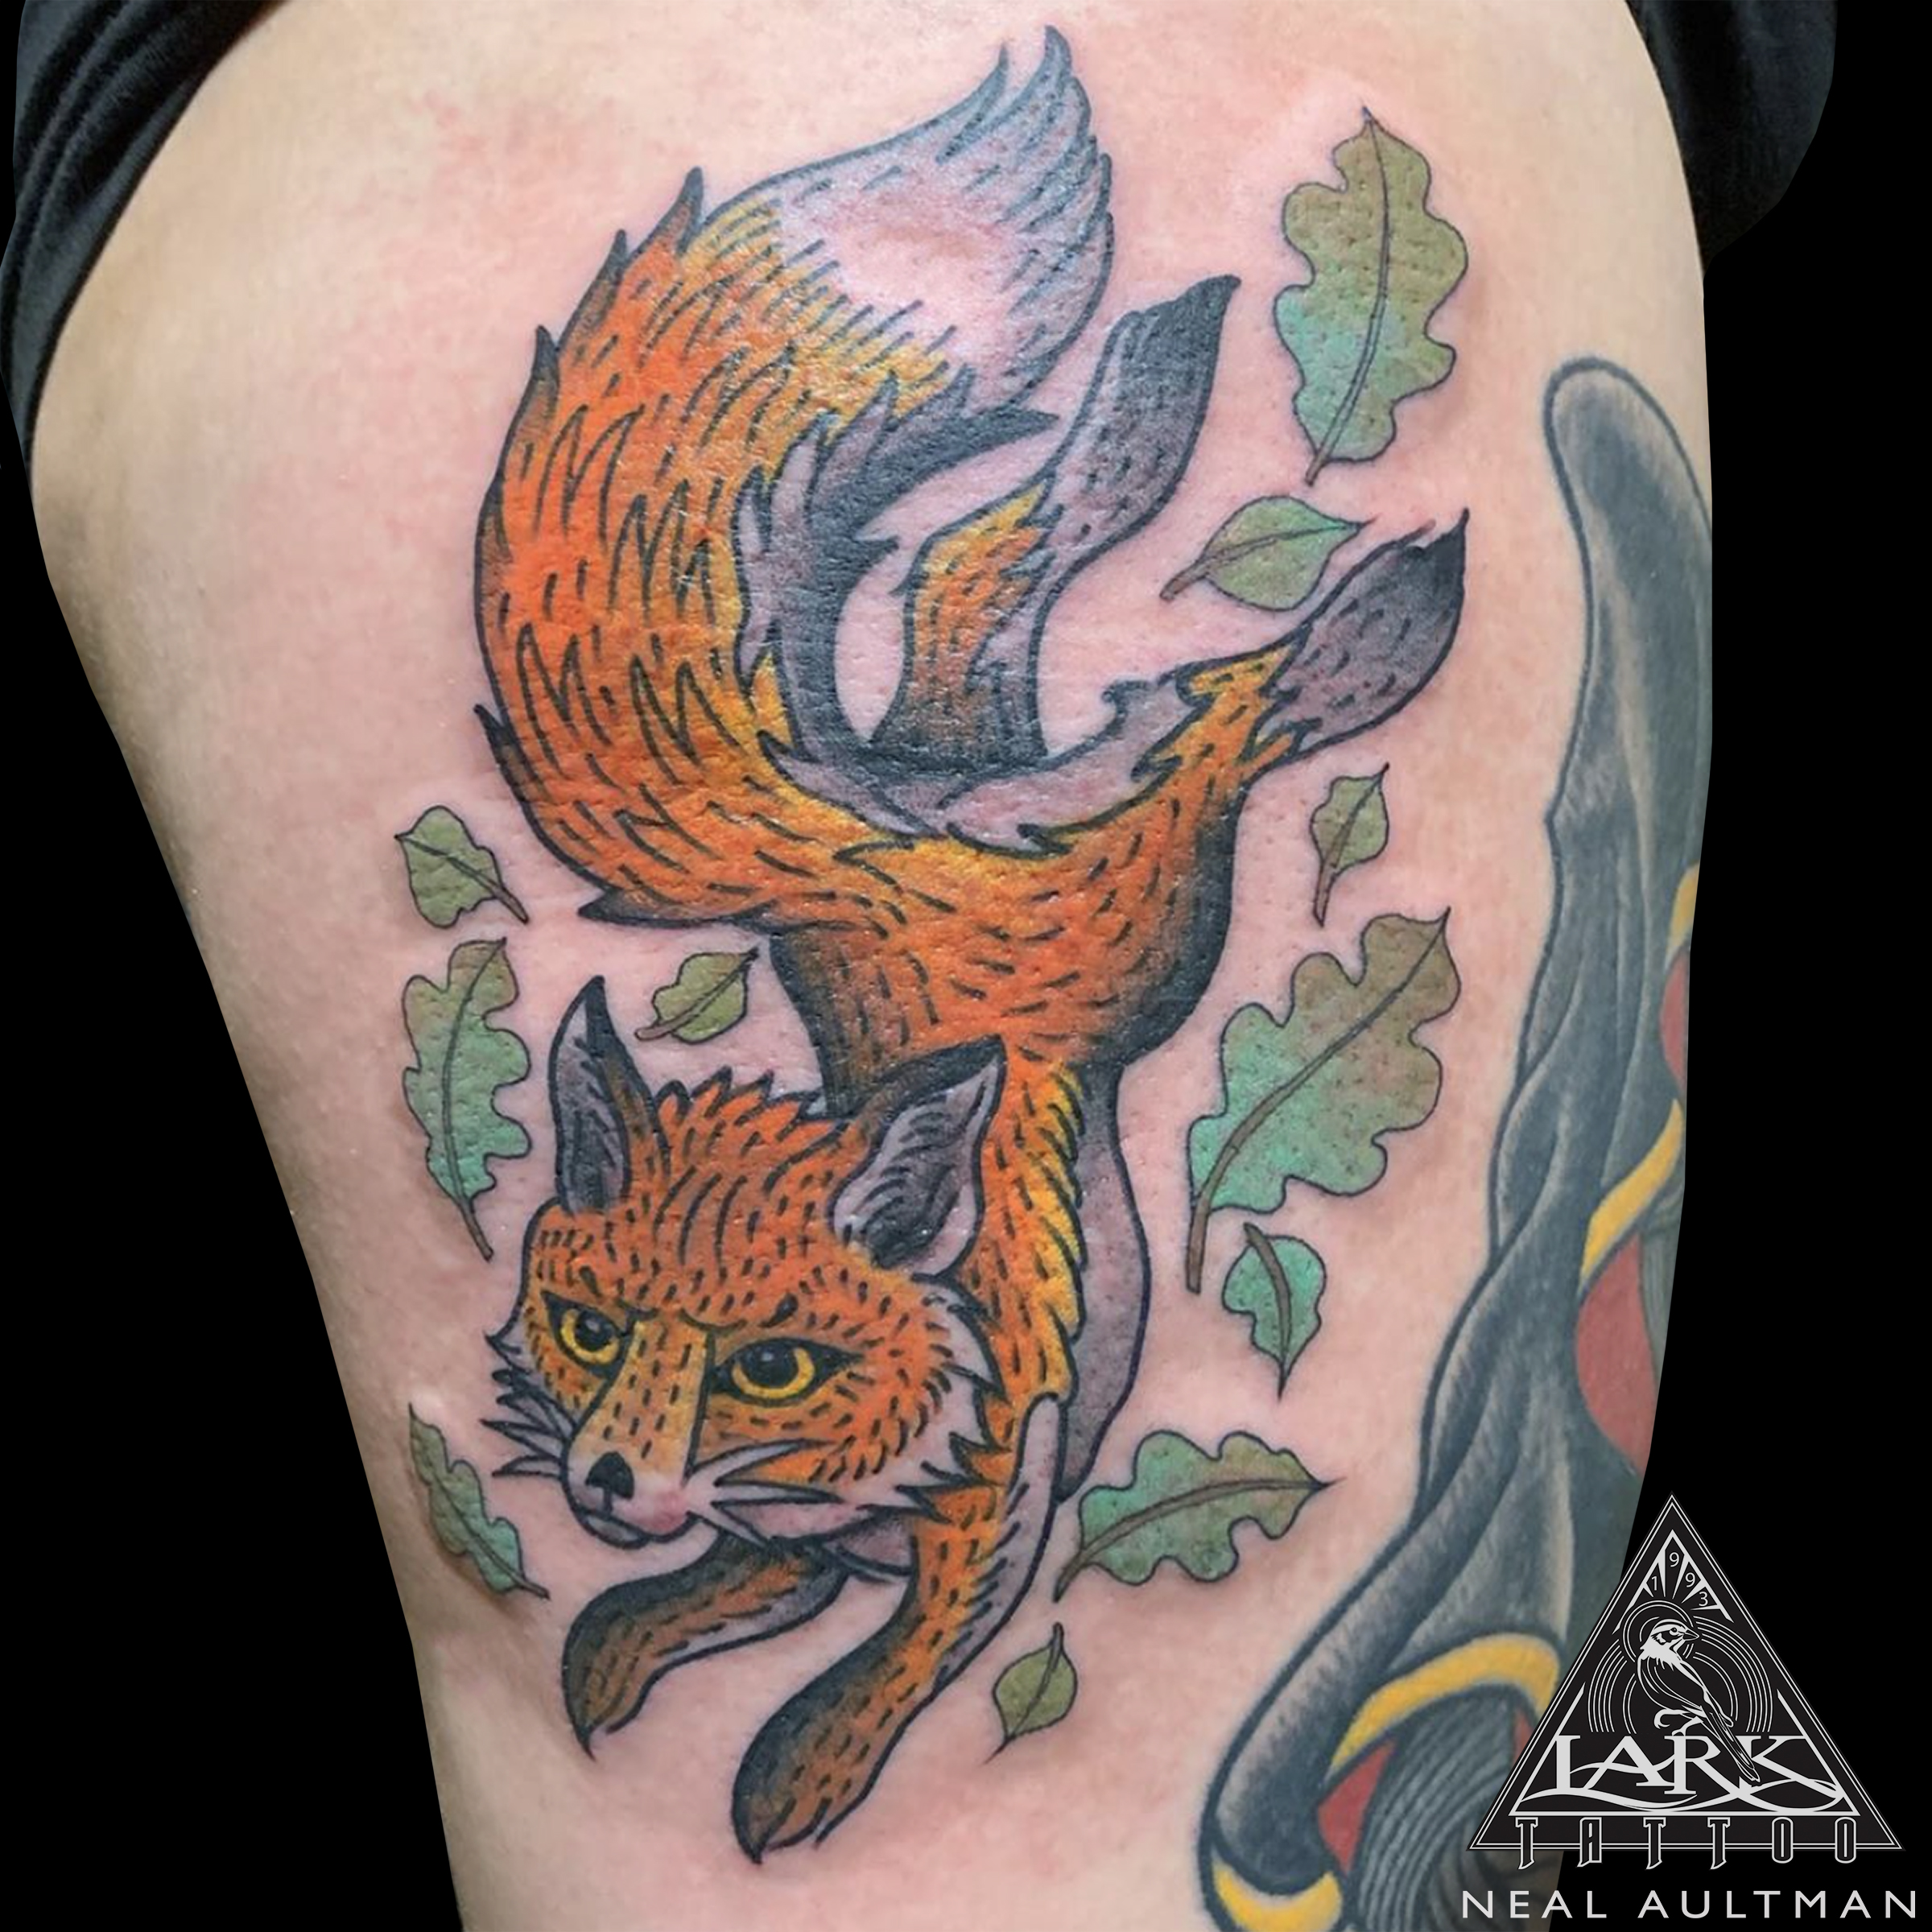 LarkTattoo, Fox, FoxTattoo, Animal, AnimalTattoo, ColorTattoo , NealAultman, NealAultmanTattoo, NealAultmanLarkTattoo, Tattoo, Tattoos , TattooArtist, Tattoist, Tattooer, LongIslandTattooArtist, LongIslandTattooer, LongIslandTattoo, TattooOfTheDay, Tat, Tats, Tatts, Tatted, Inked, Ink, TattooInk, AmazingInk, AmazingTattoo, BodyArt, LarkTattooWestbury, Westbury, LongIsland, NY, NewYork, USA, Art, Tattedup, InkedUp, LarkTattoos